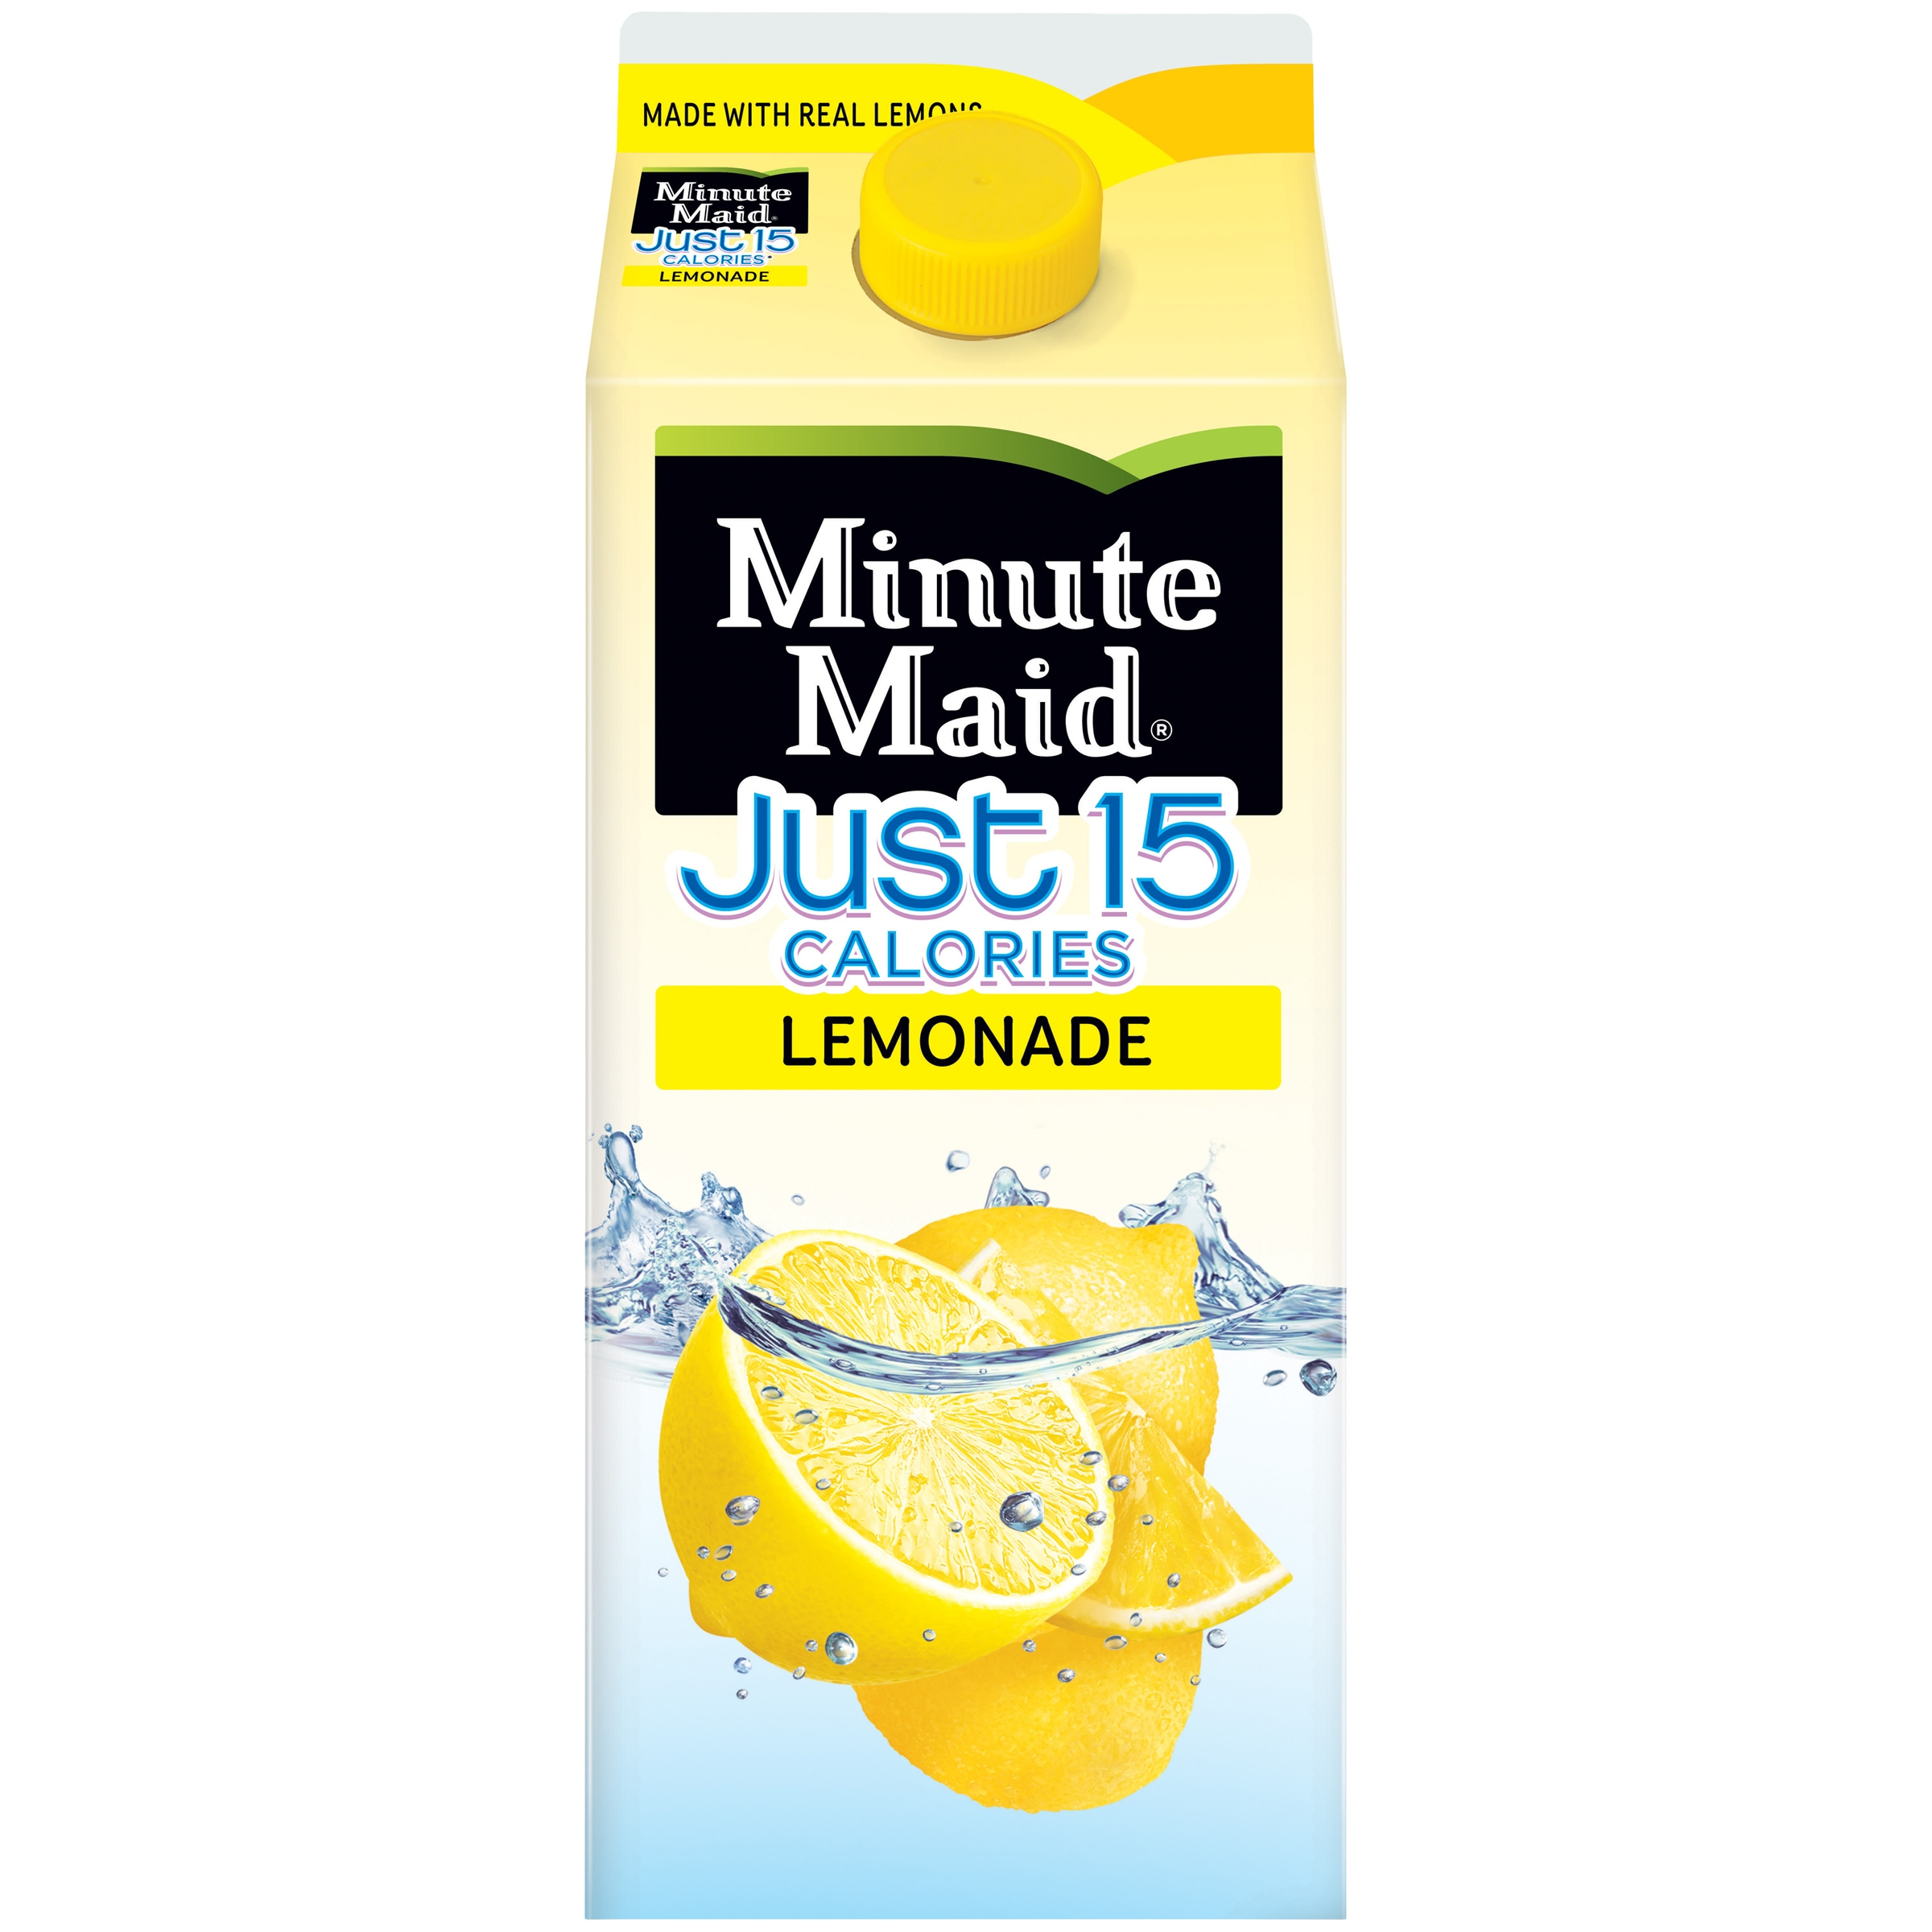 Minute Maid® Premium Just 15 Lemonade Flavored Fruit Drink 59 fl. oz. Carton